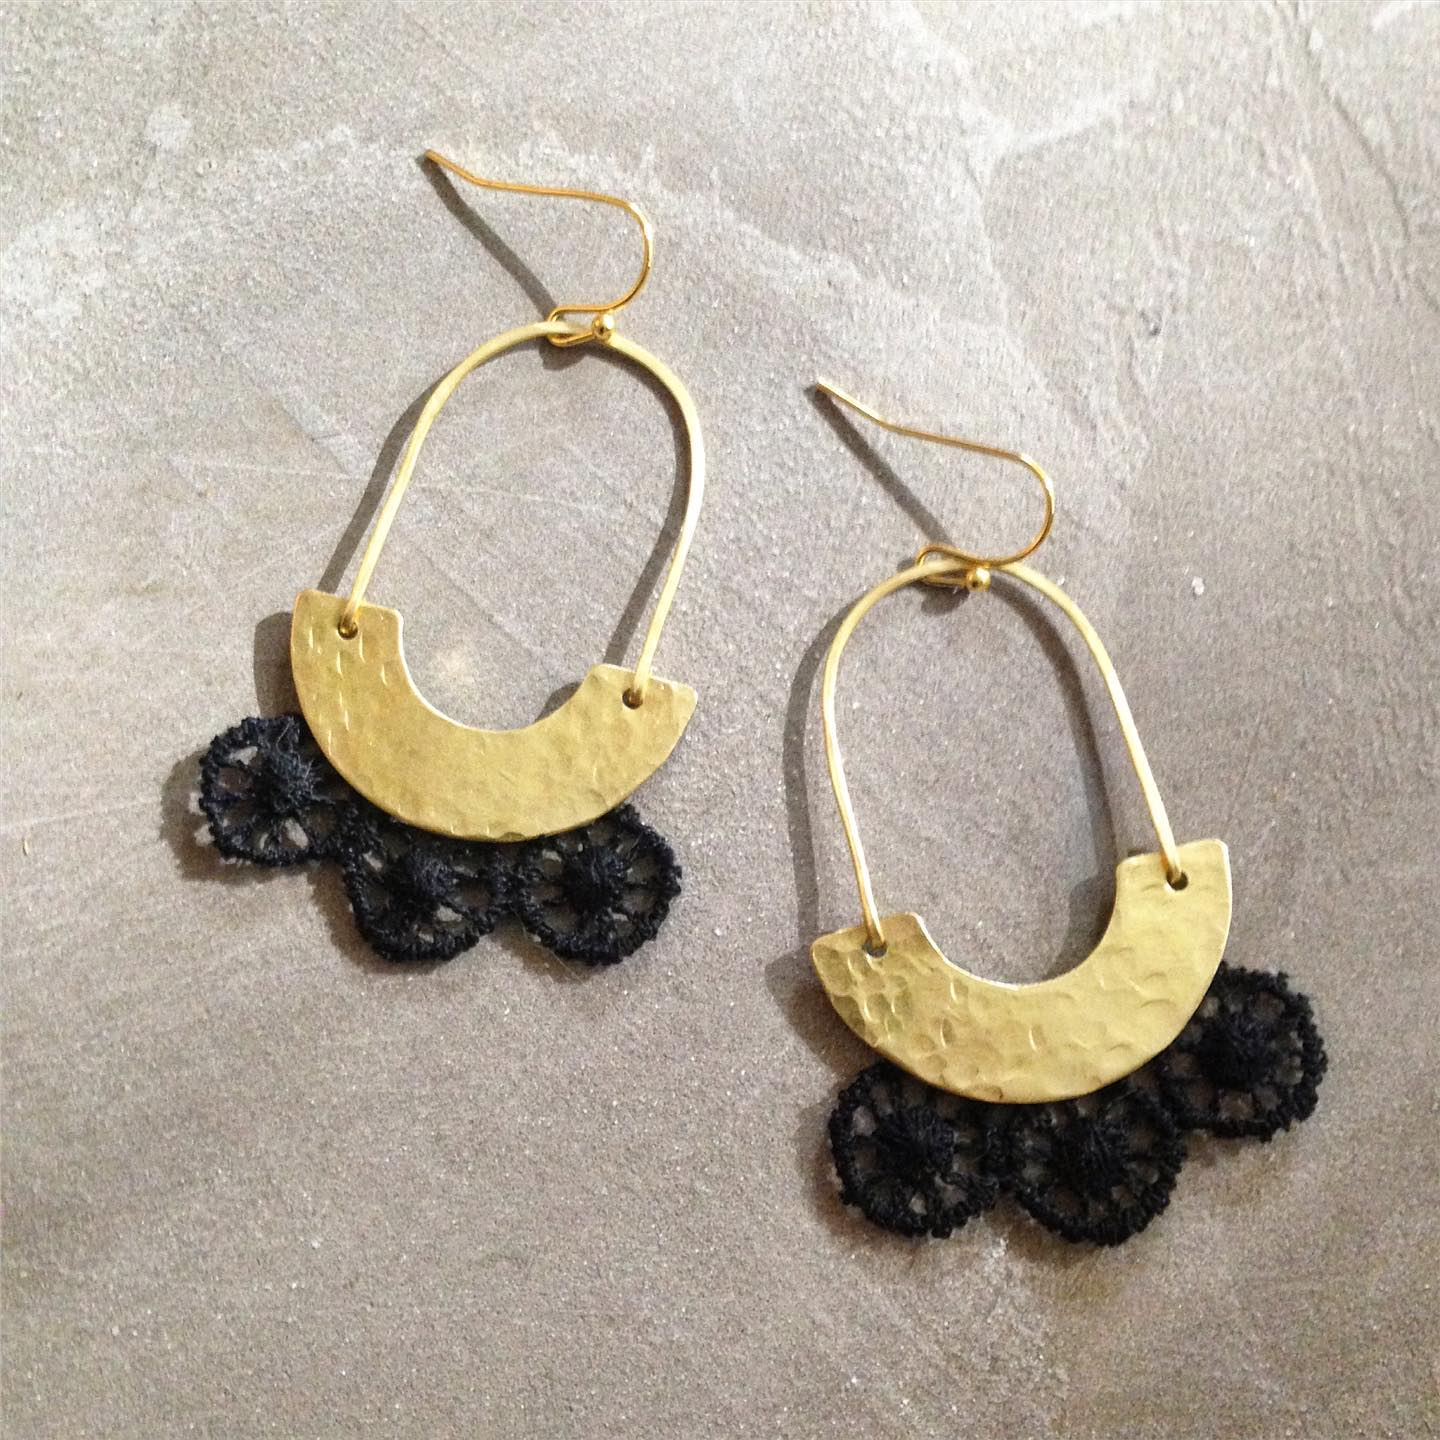 White Owl Jewelry - Black Lace + Hammered Brass Earrings